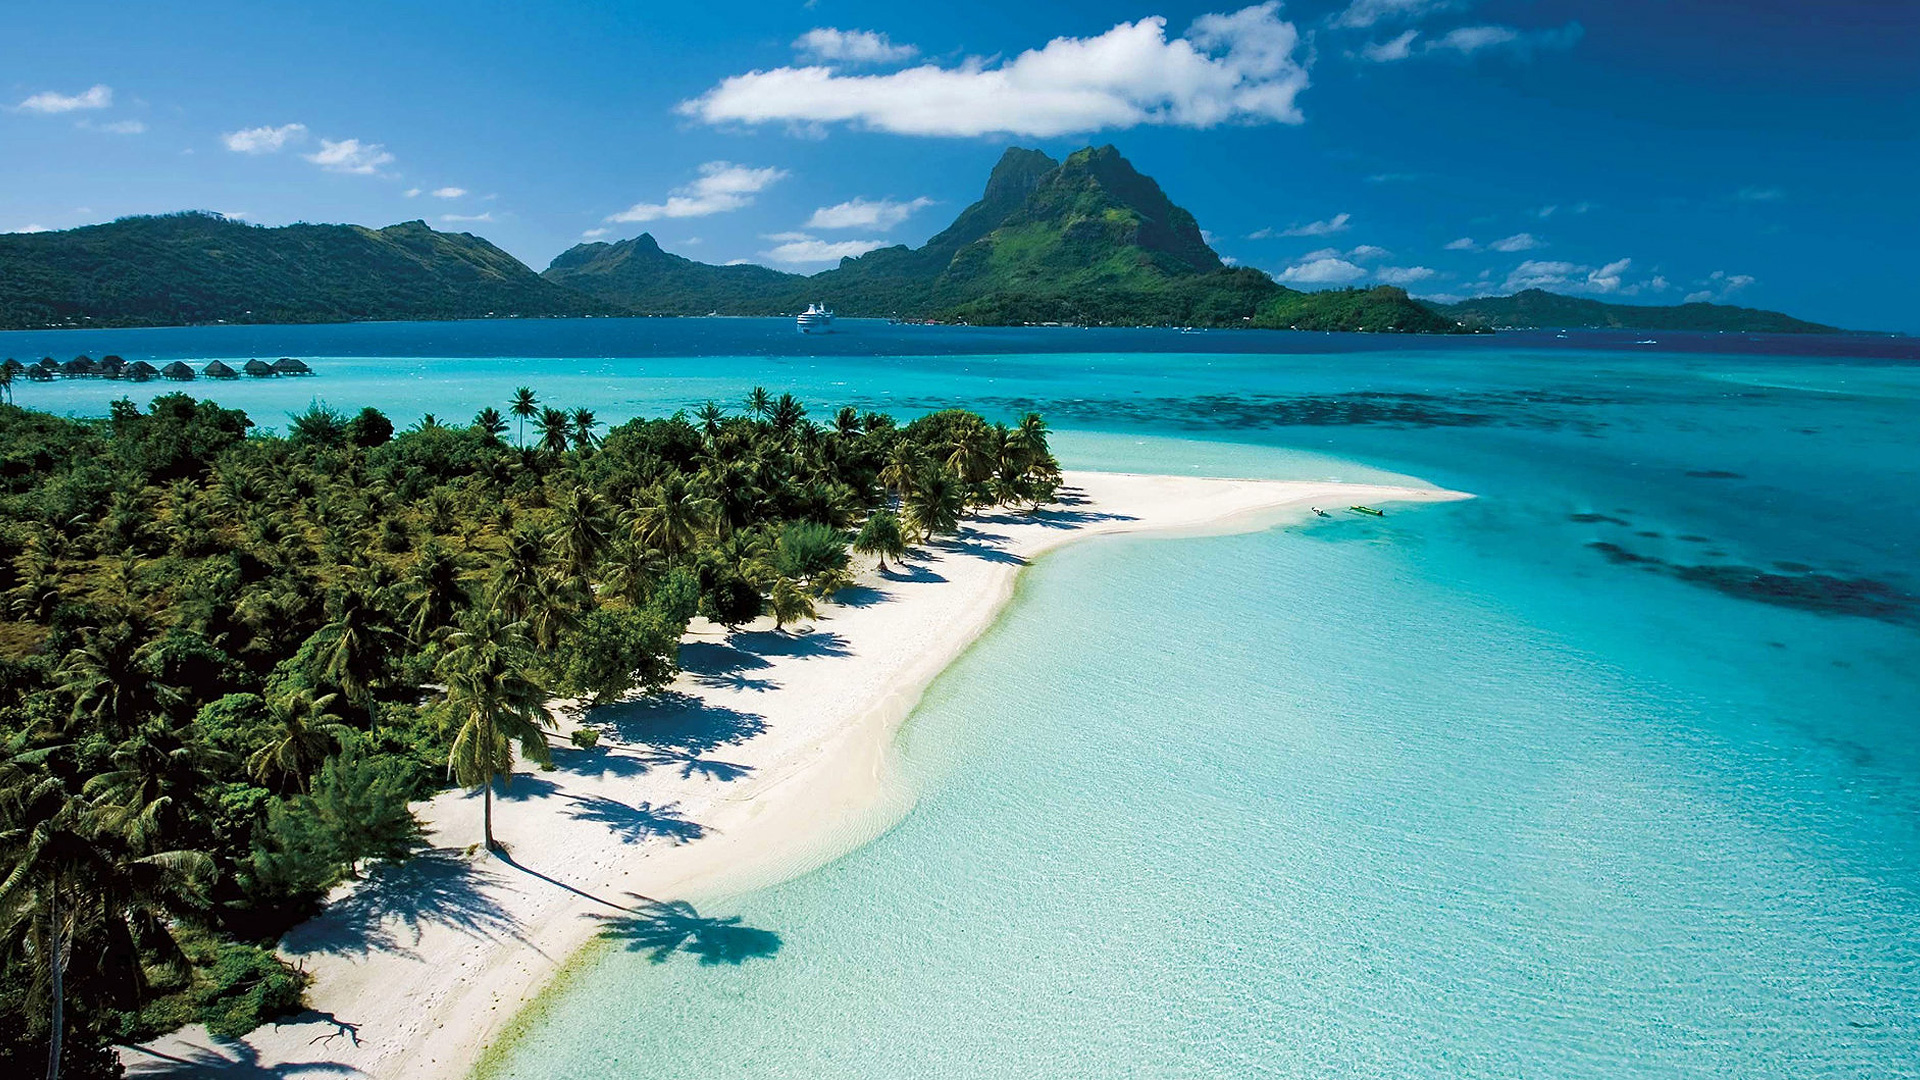 Tahiti Beach Wallpaper